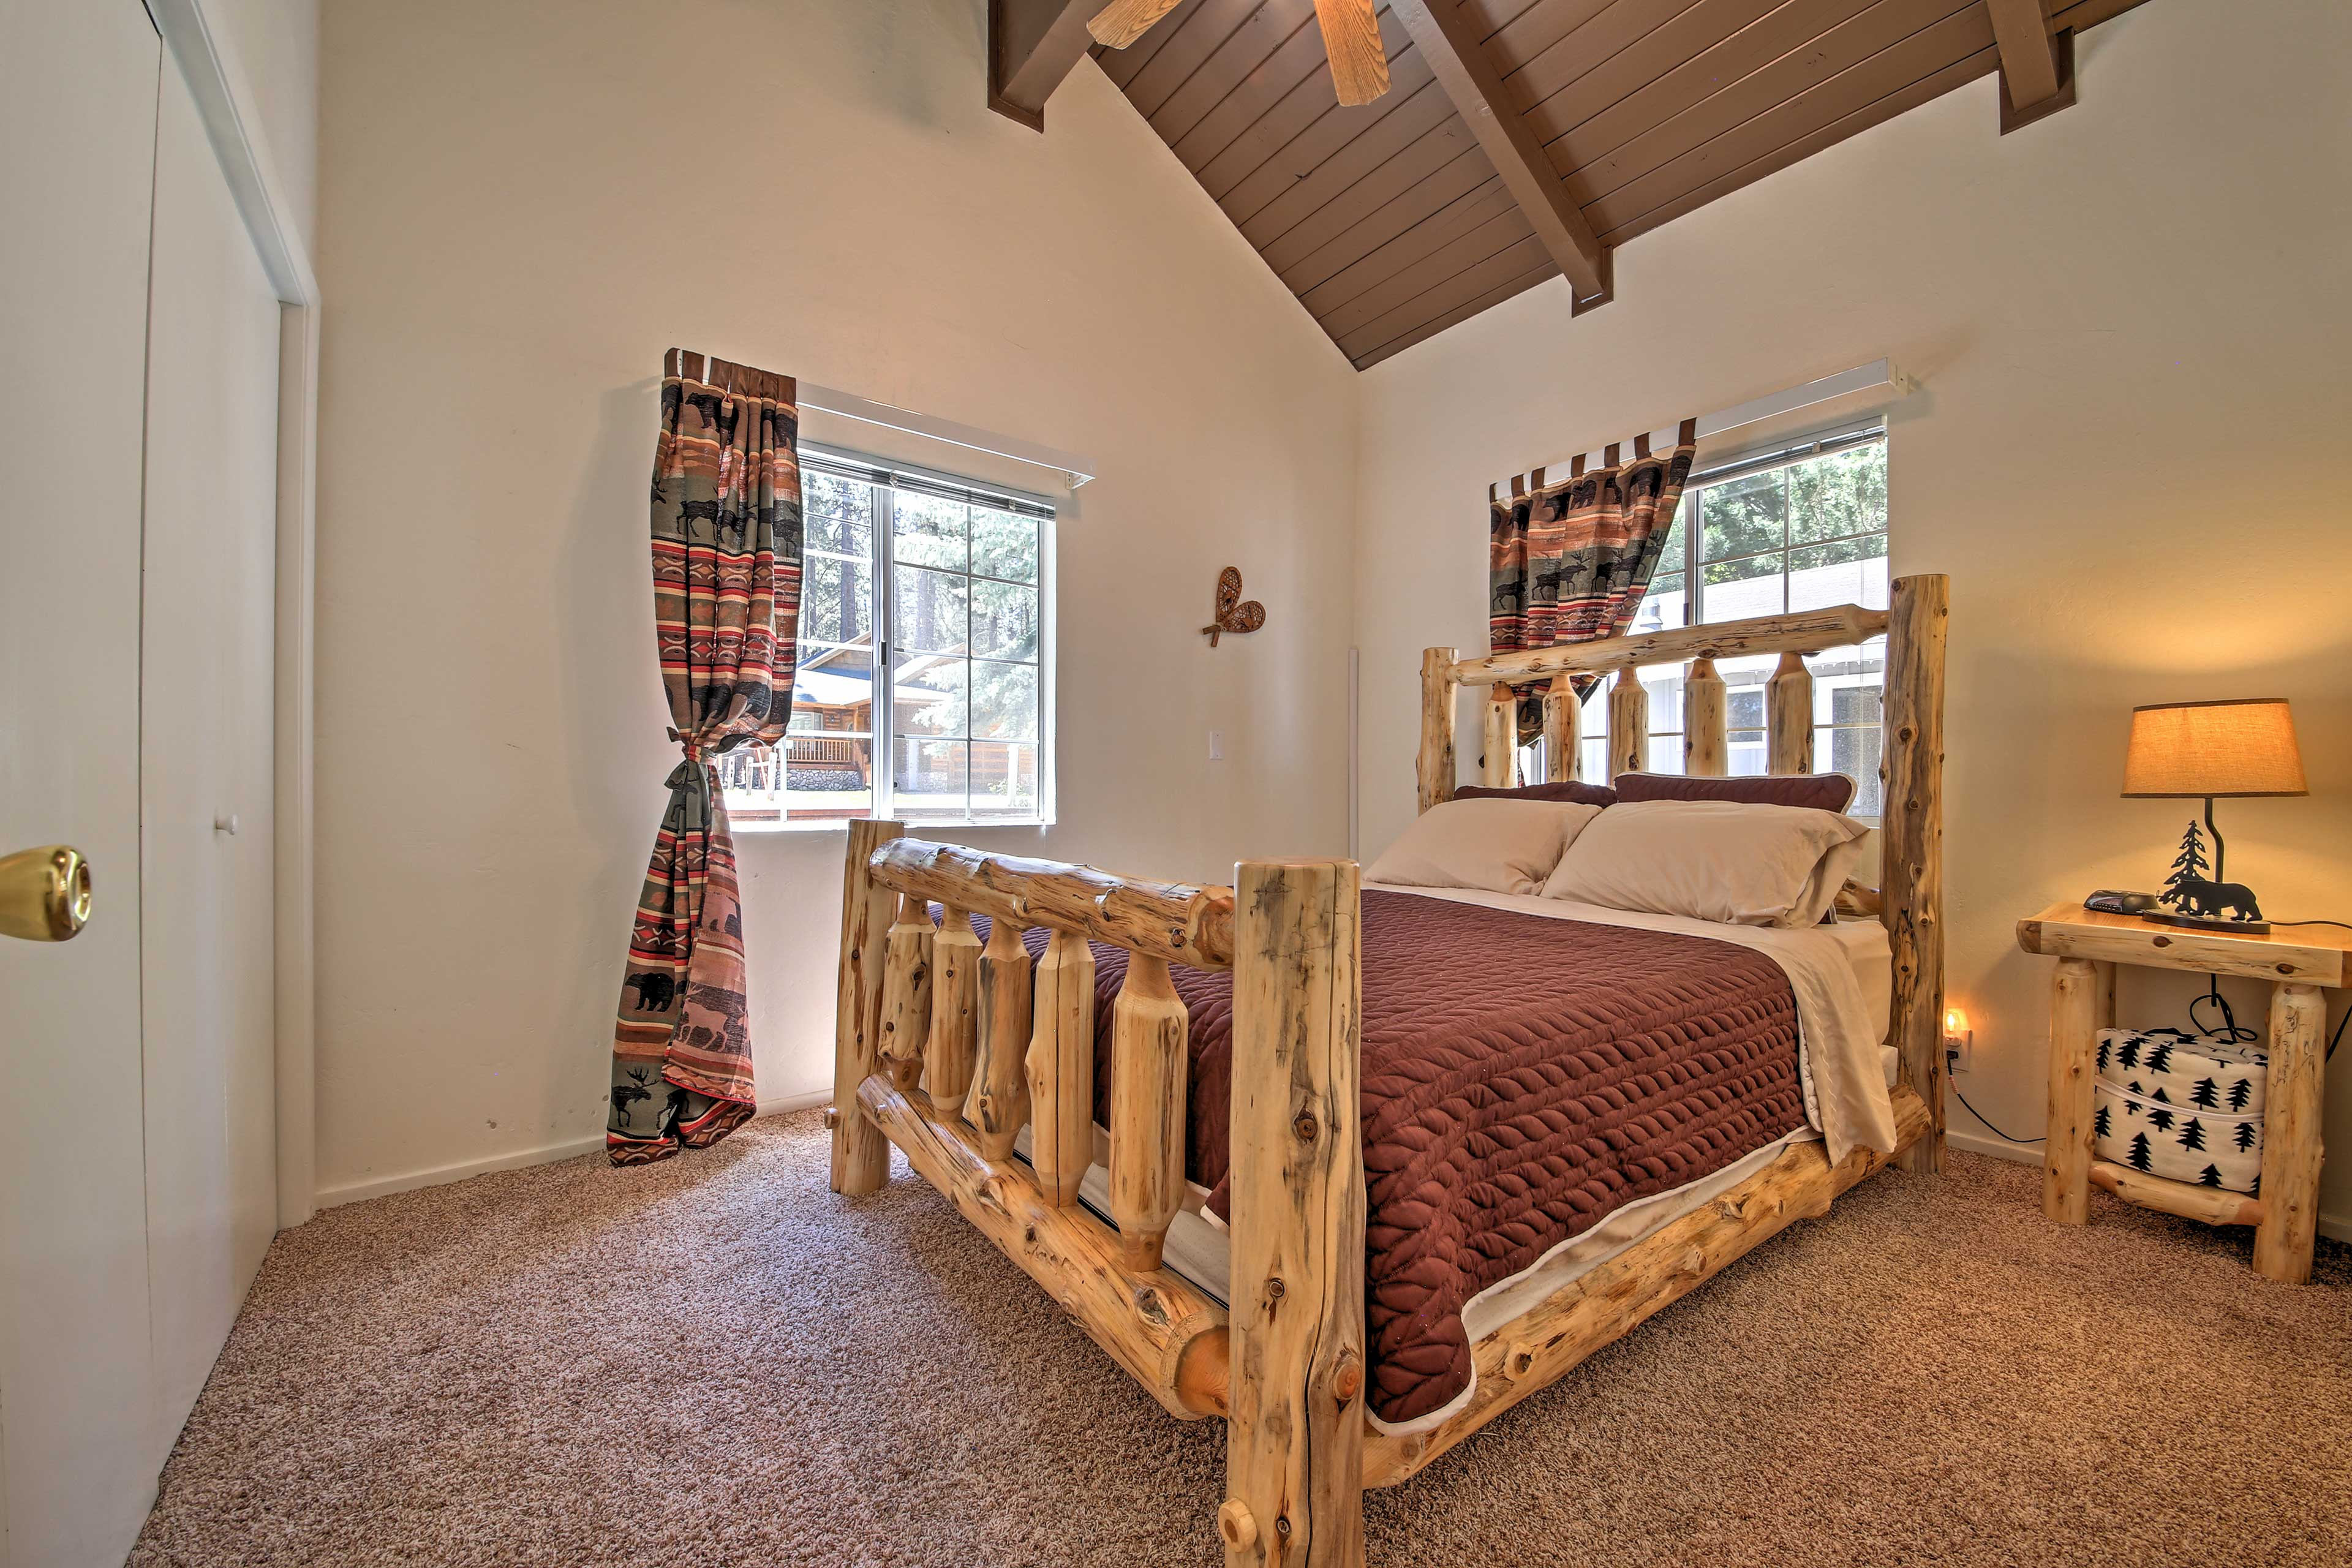 Cozy up in this queen-sized bed as you drift off into a deep sleep.